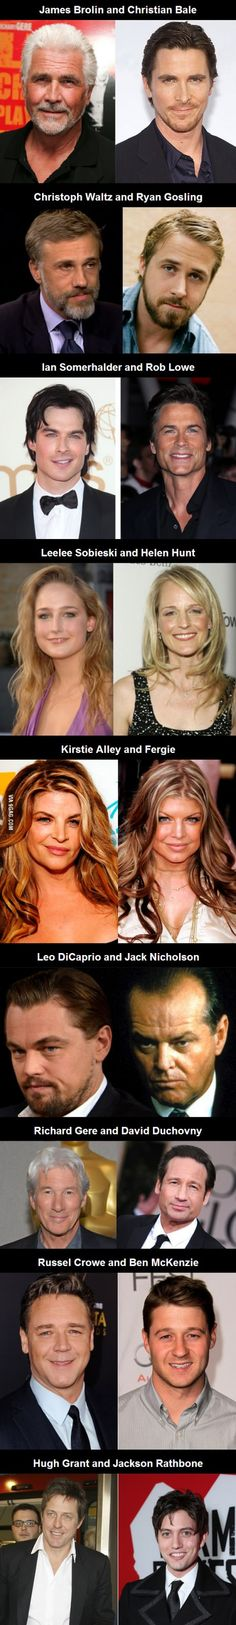 Celebrity Reincarnations | Research